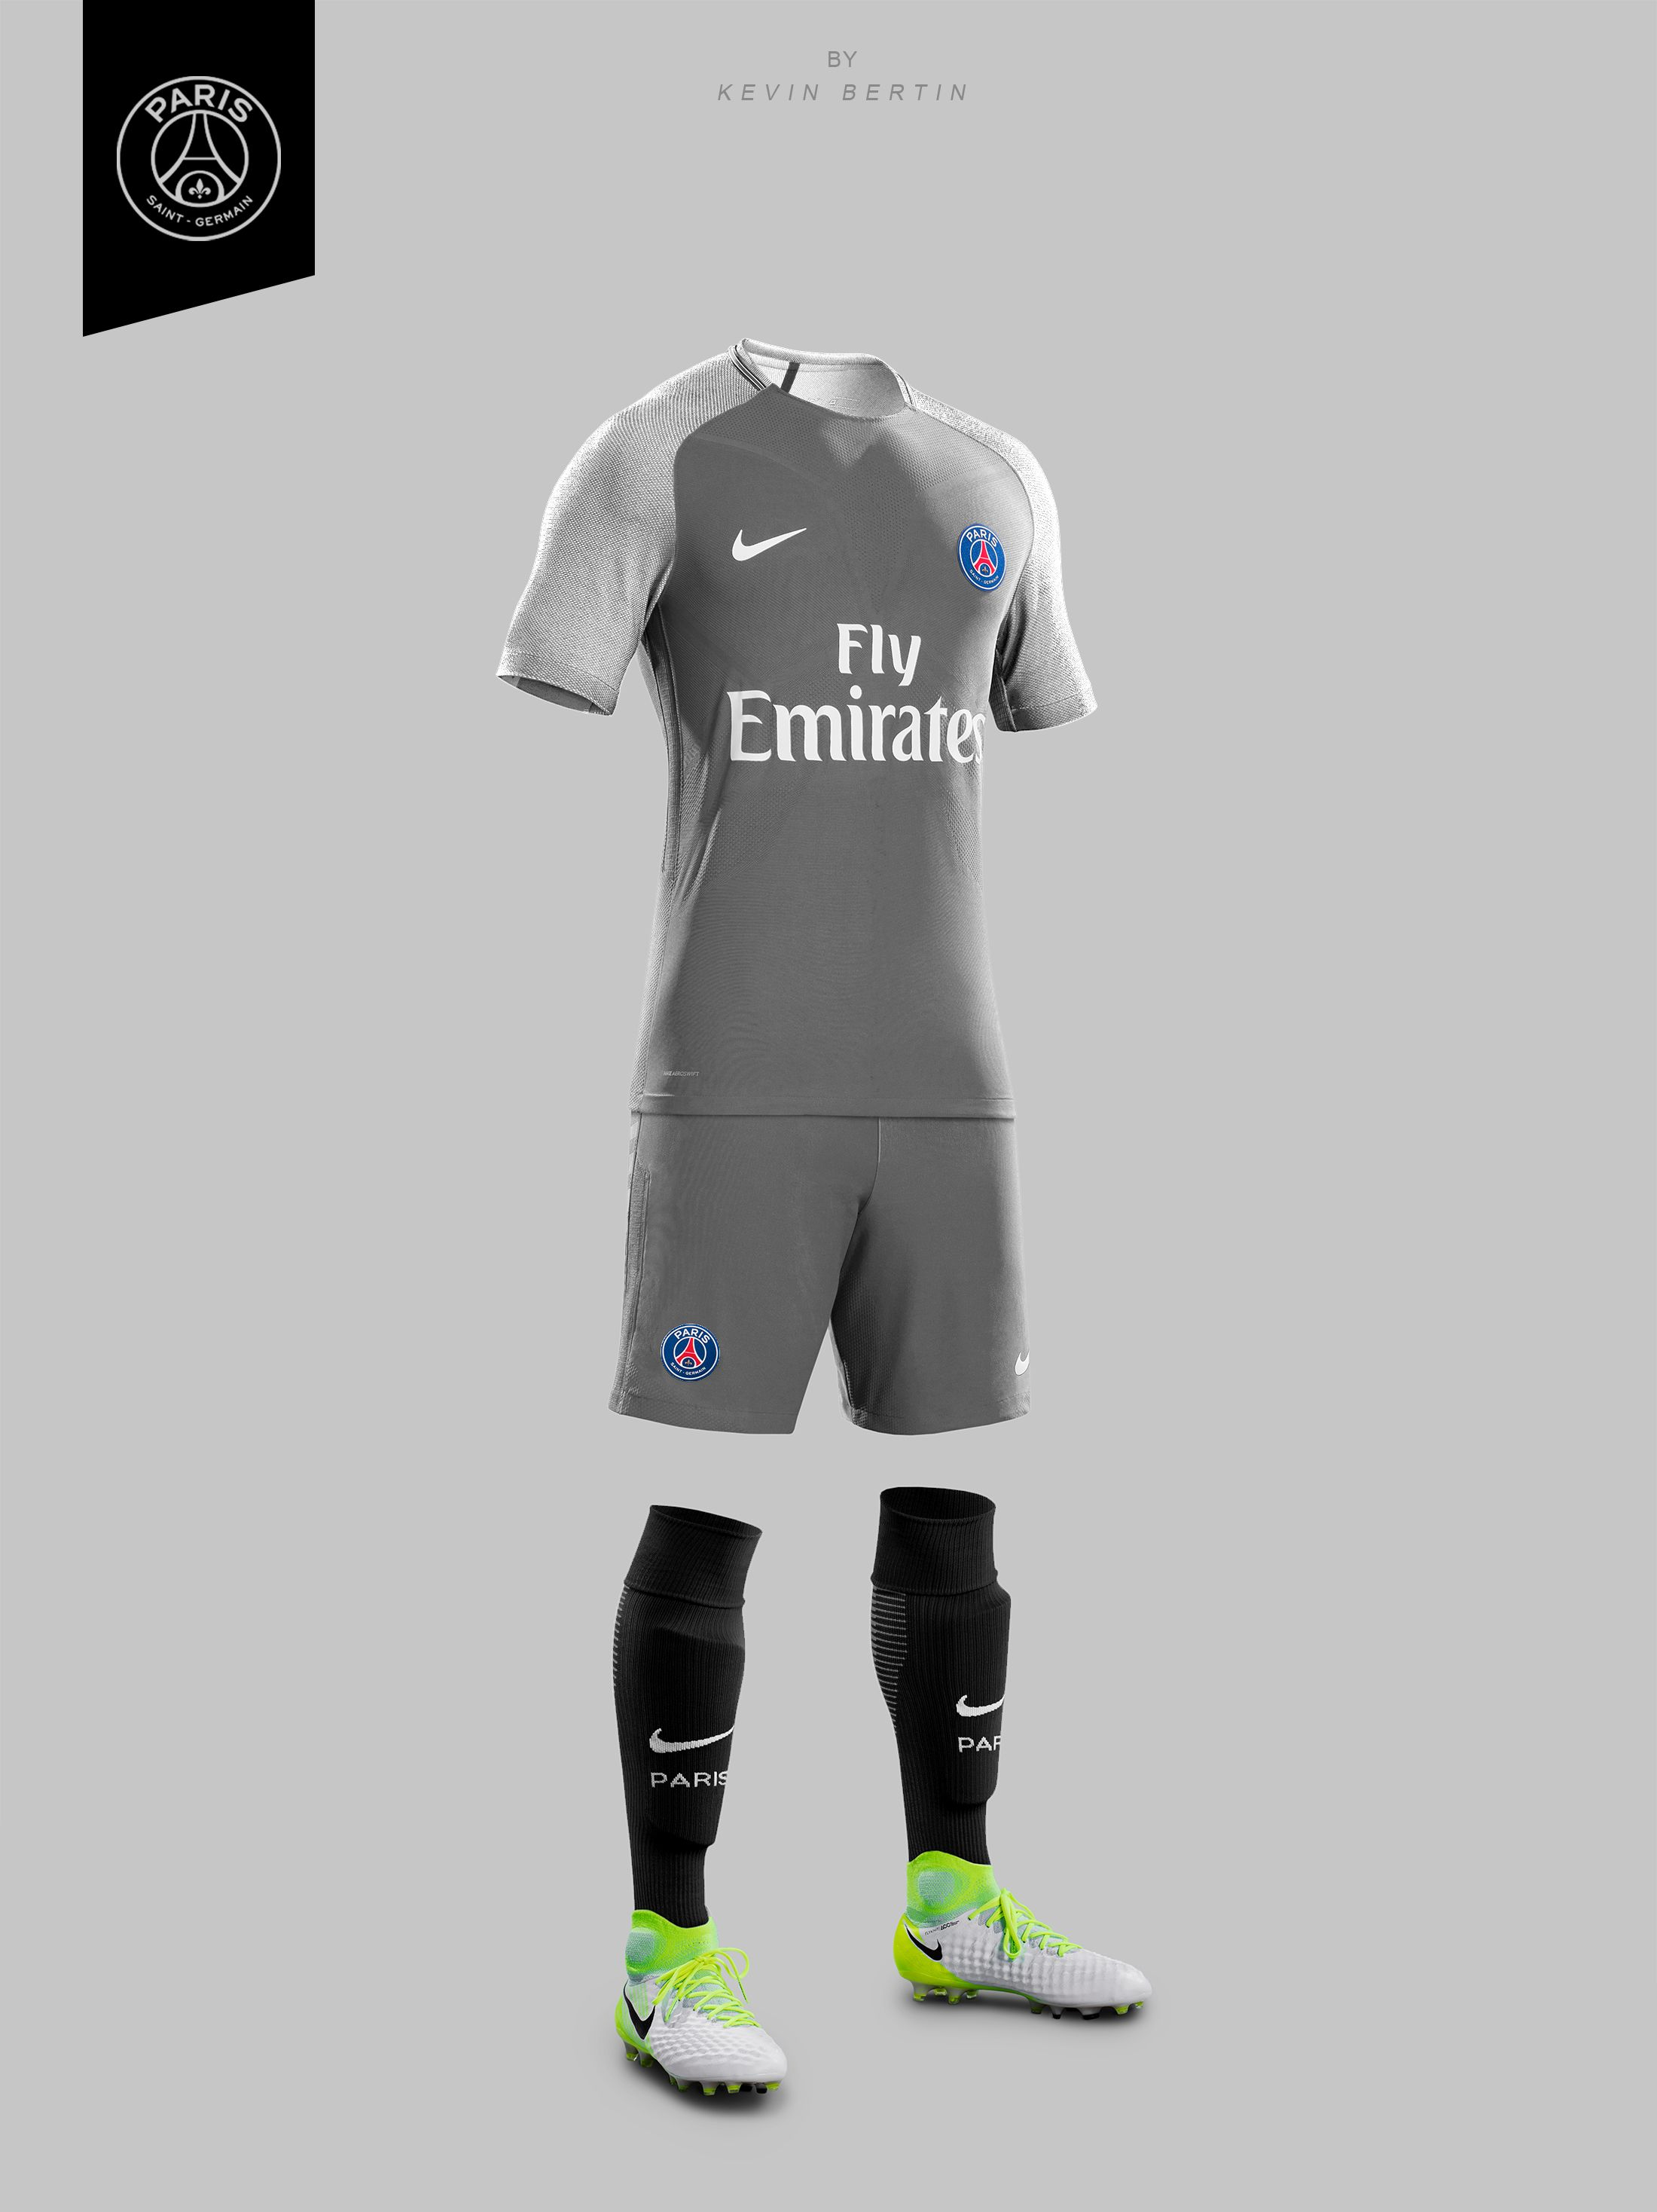 6a27a899f9147 PSG Concept Design by Kevin Bertin Jersey Maillot kit Nike 2019 Paris  Saint-Germain